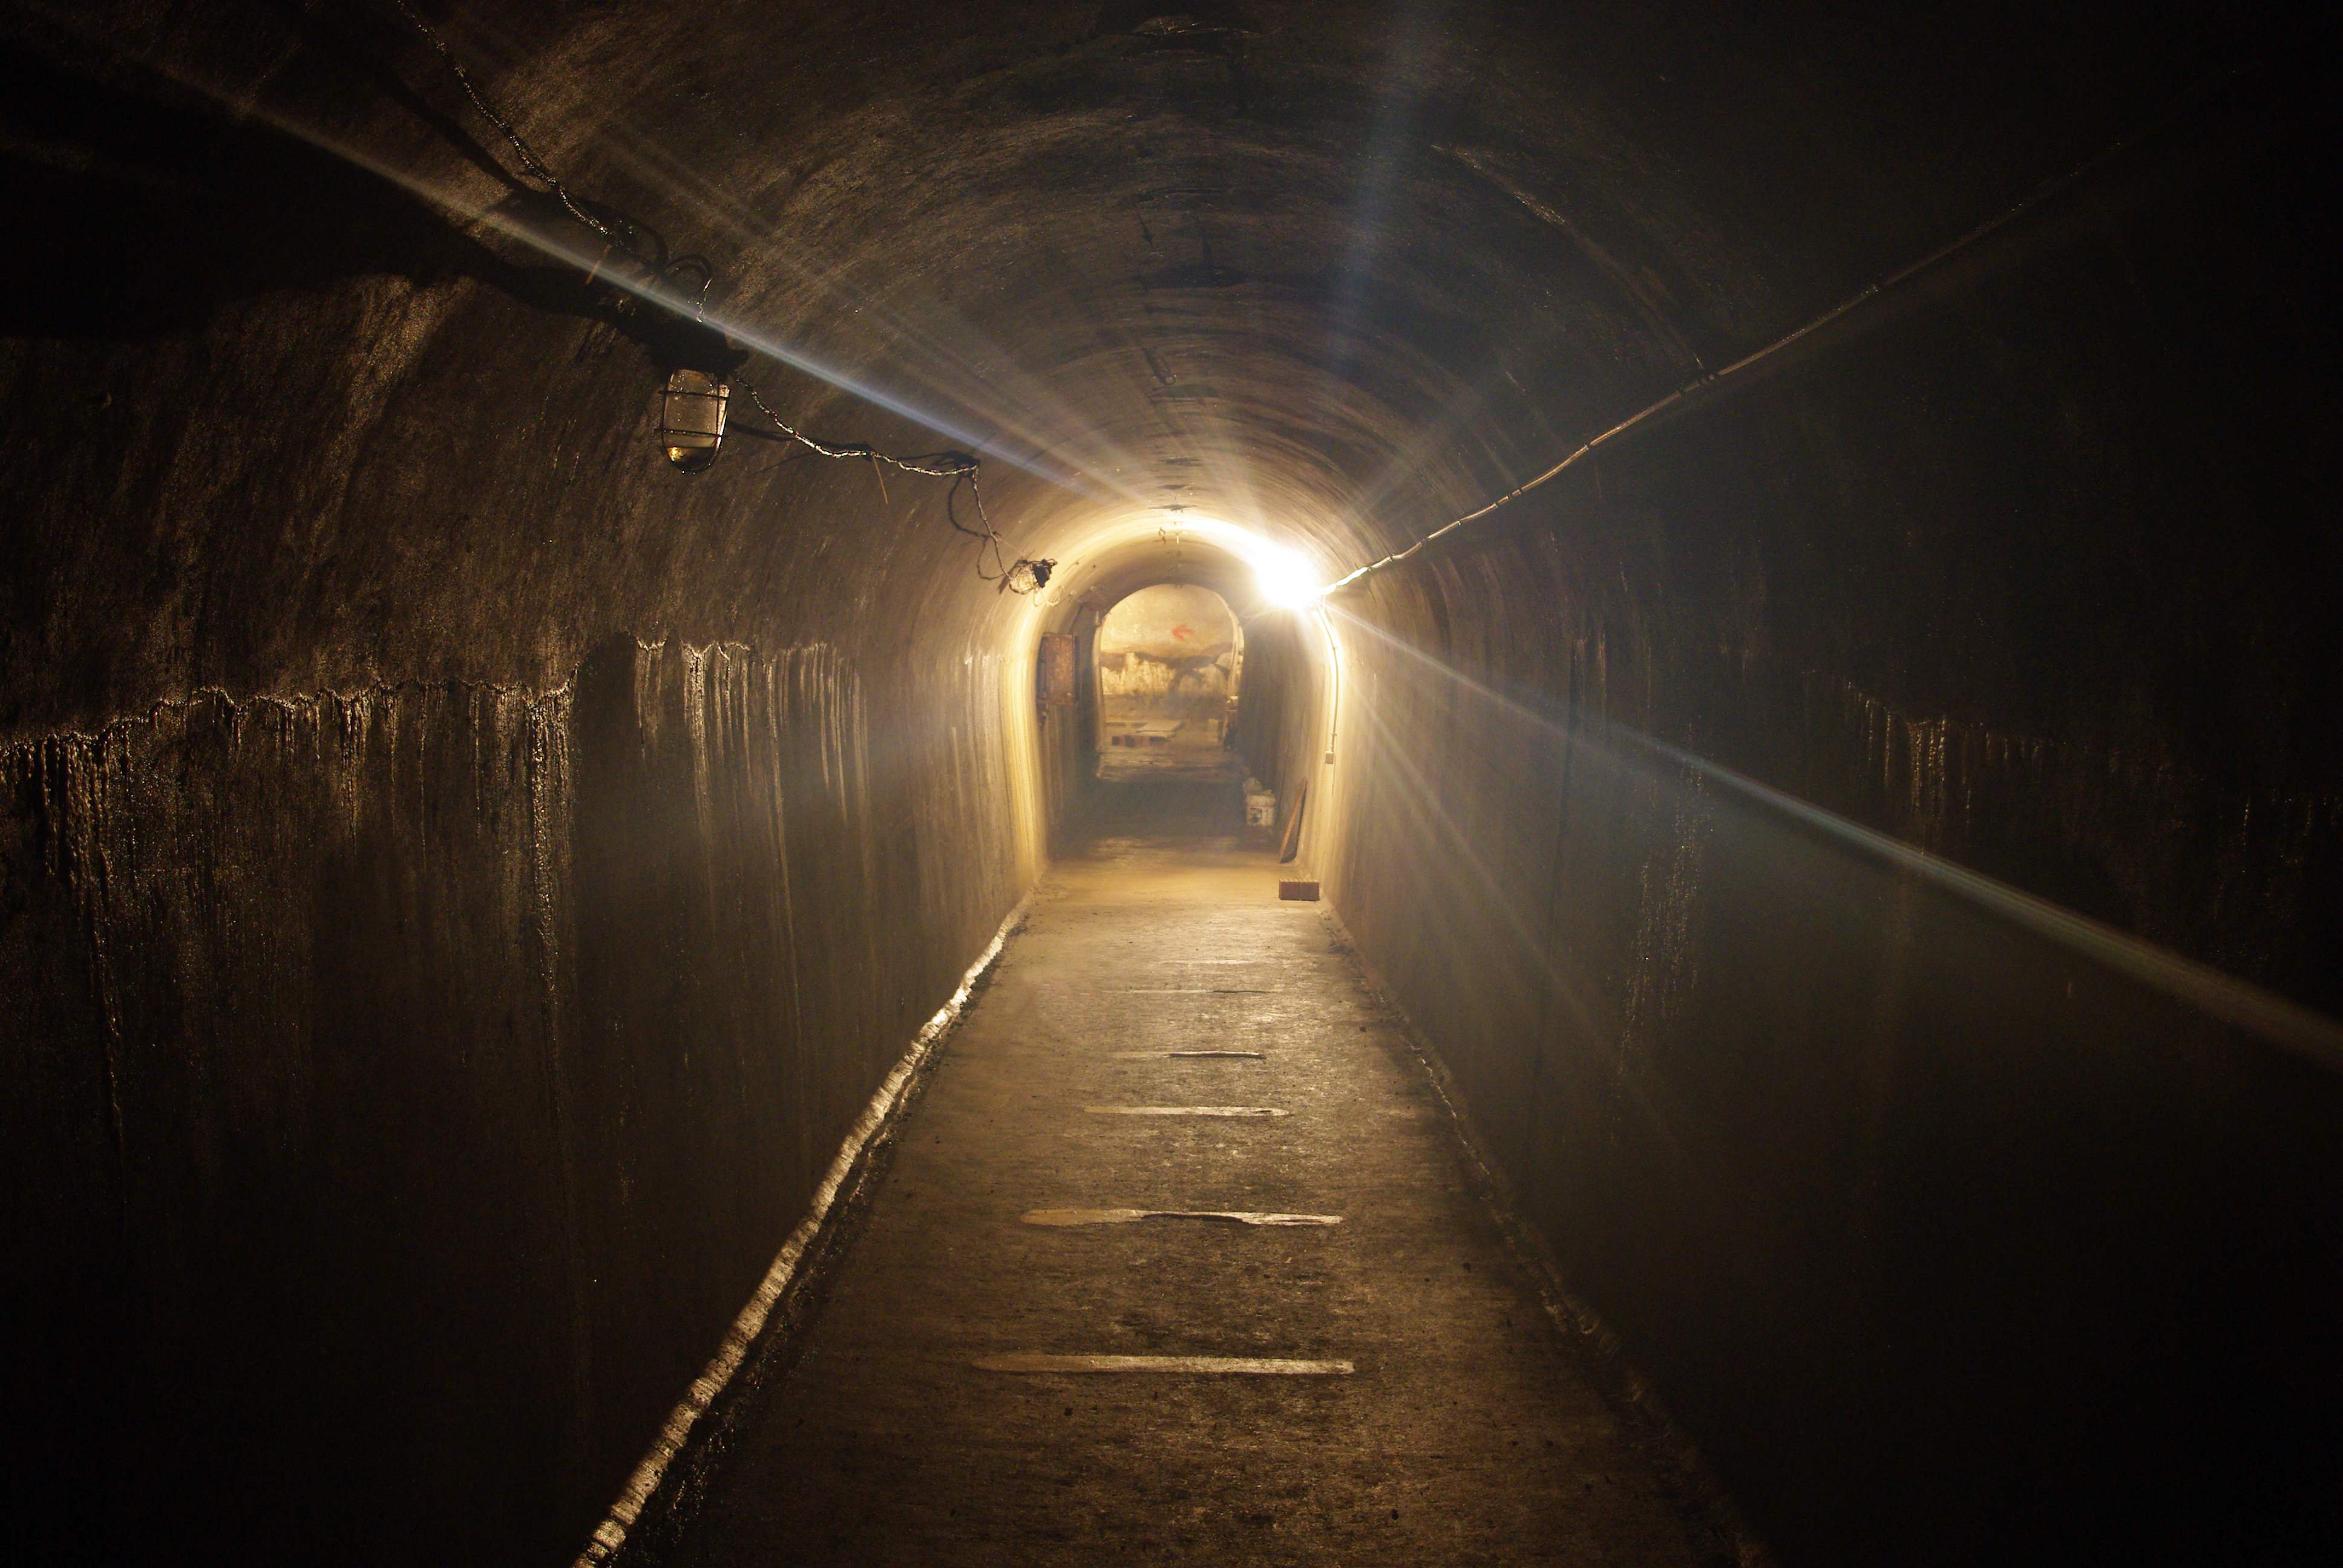 tunnel city online dating Hezekiah`s tunnel, city of david related galleries: archeology,  a rare cache of silver coins dating to the hasmonean period was discovered 0:00 archeology.